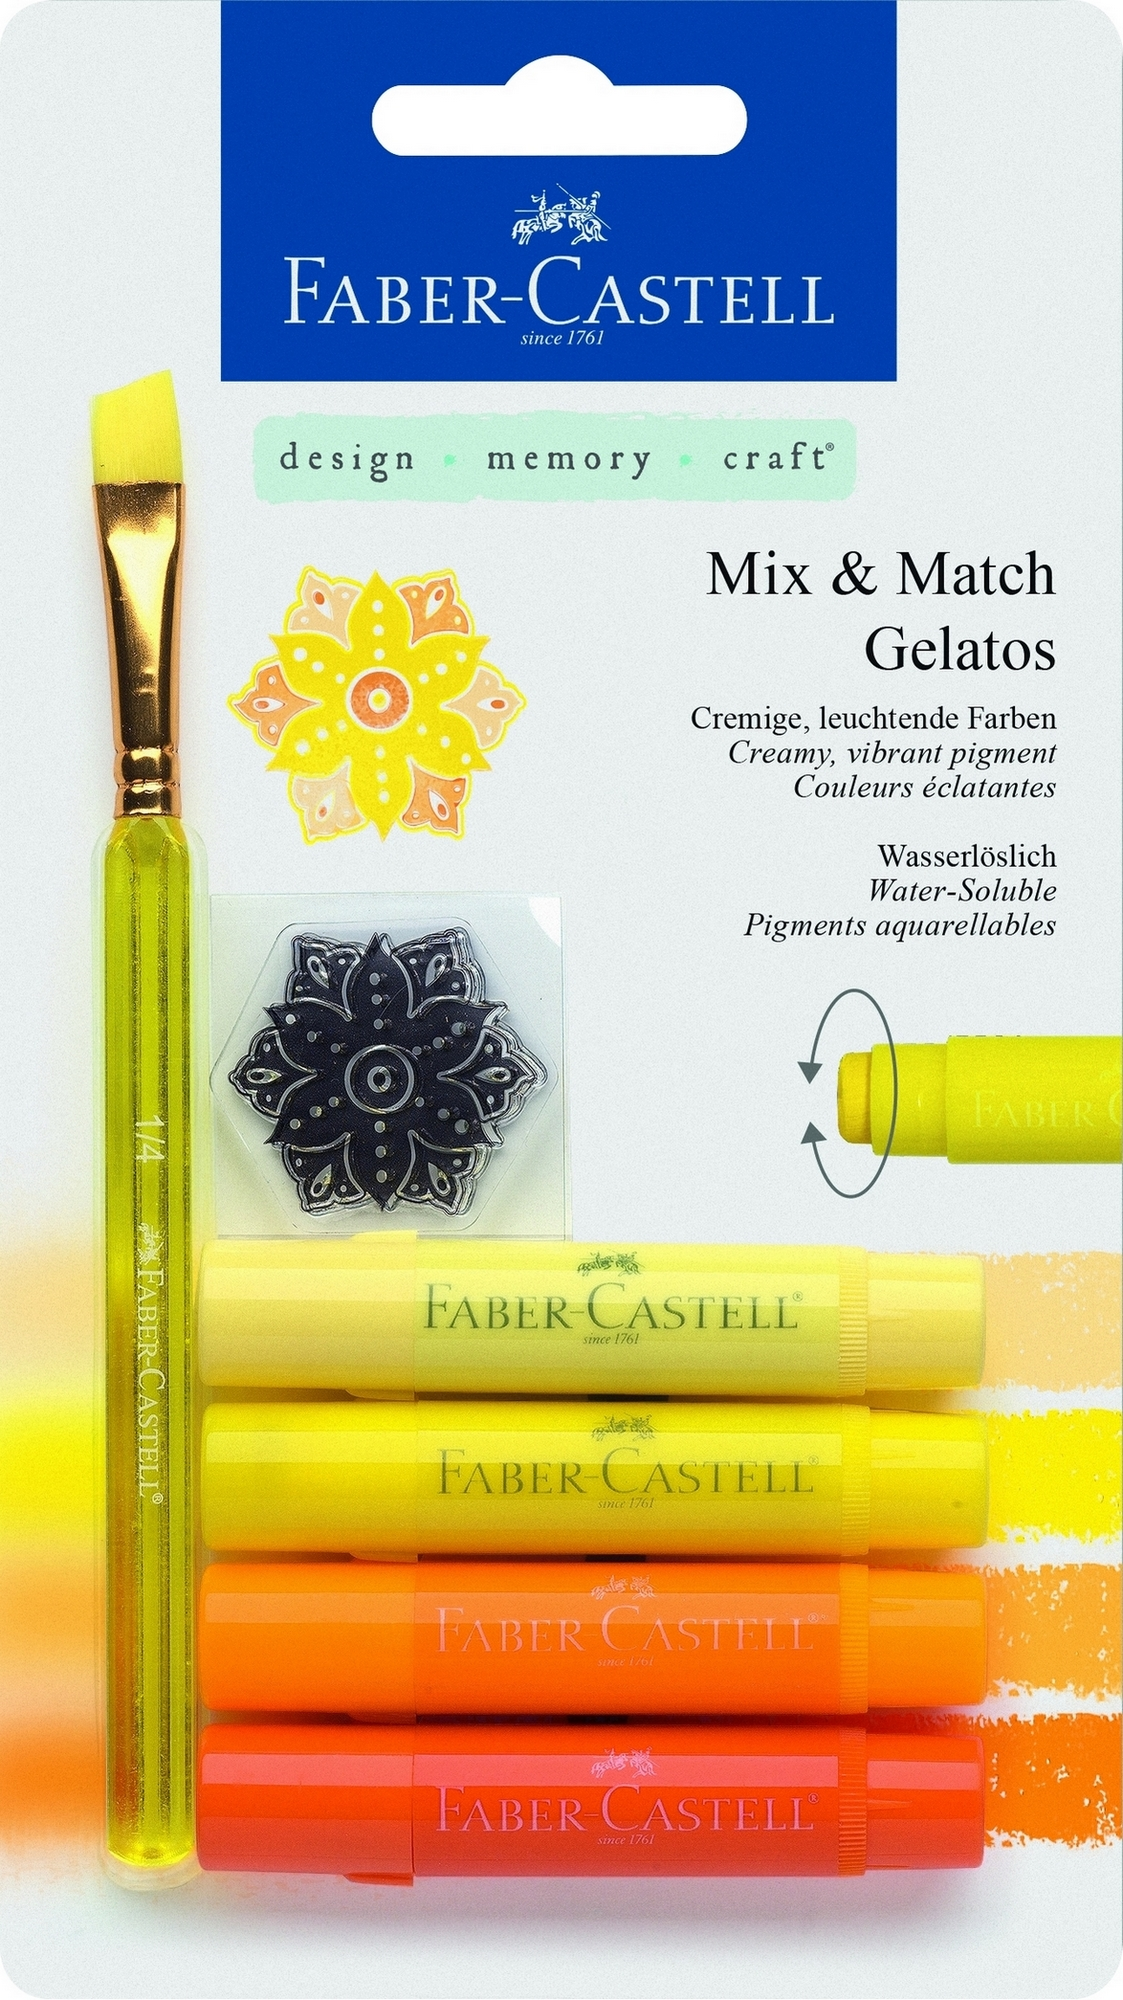 Faber-Castell Gelatos MIX&MATCH 4 ks, žlutá